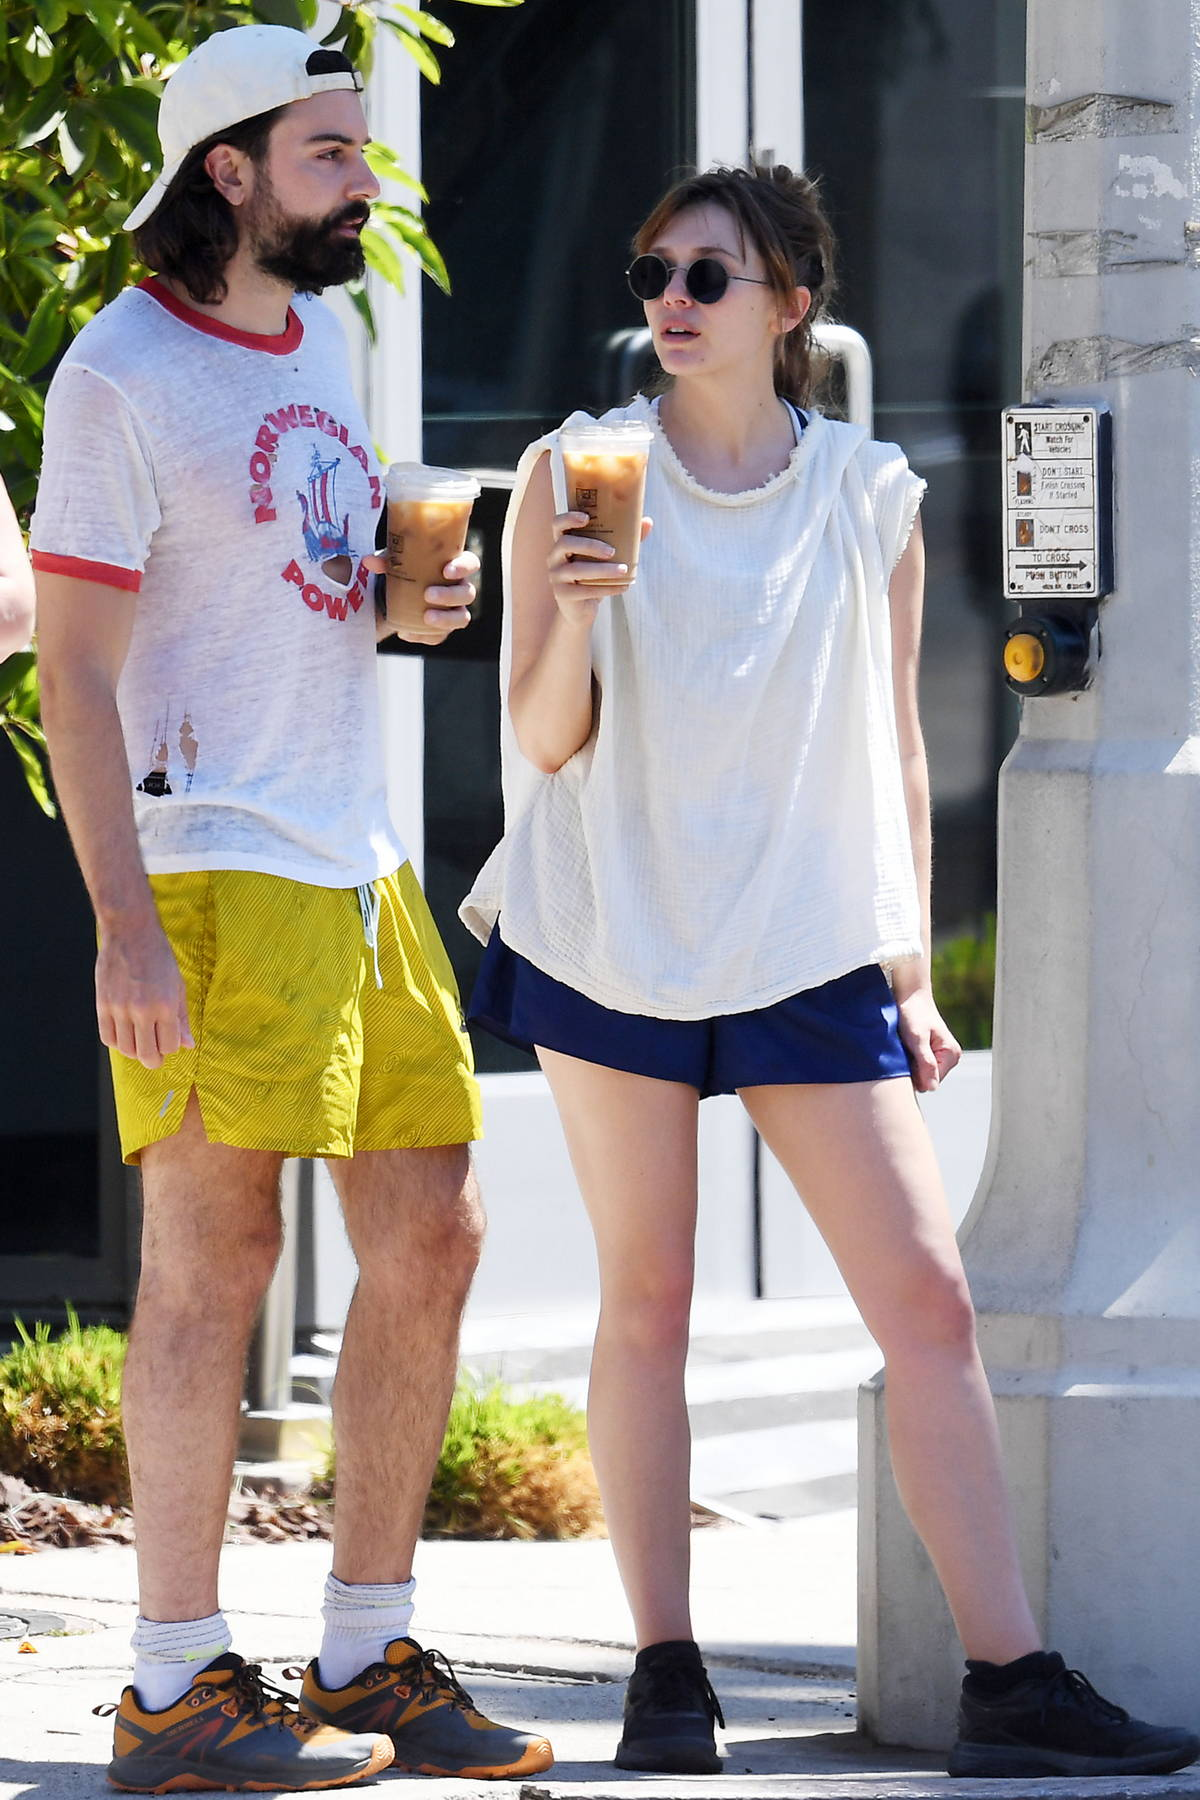 Elizabeth Olsen gets leggy in blue shorts while stepping out for iced coffee with Robbie Arnett in Los Angeles